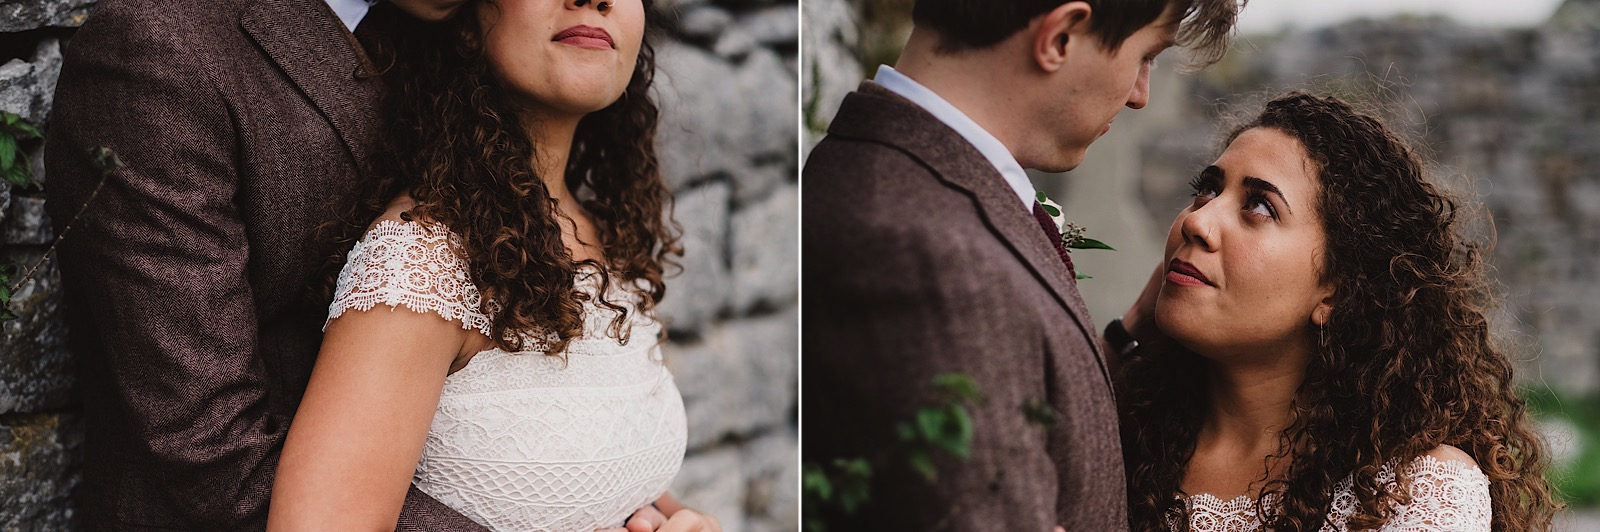 Elopement_Wedding_Ireland_Cliffs_of_moher0023